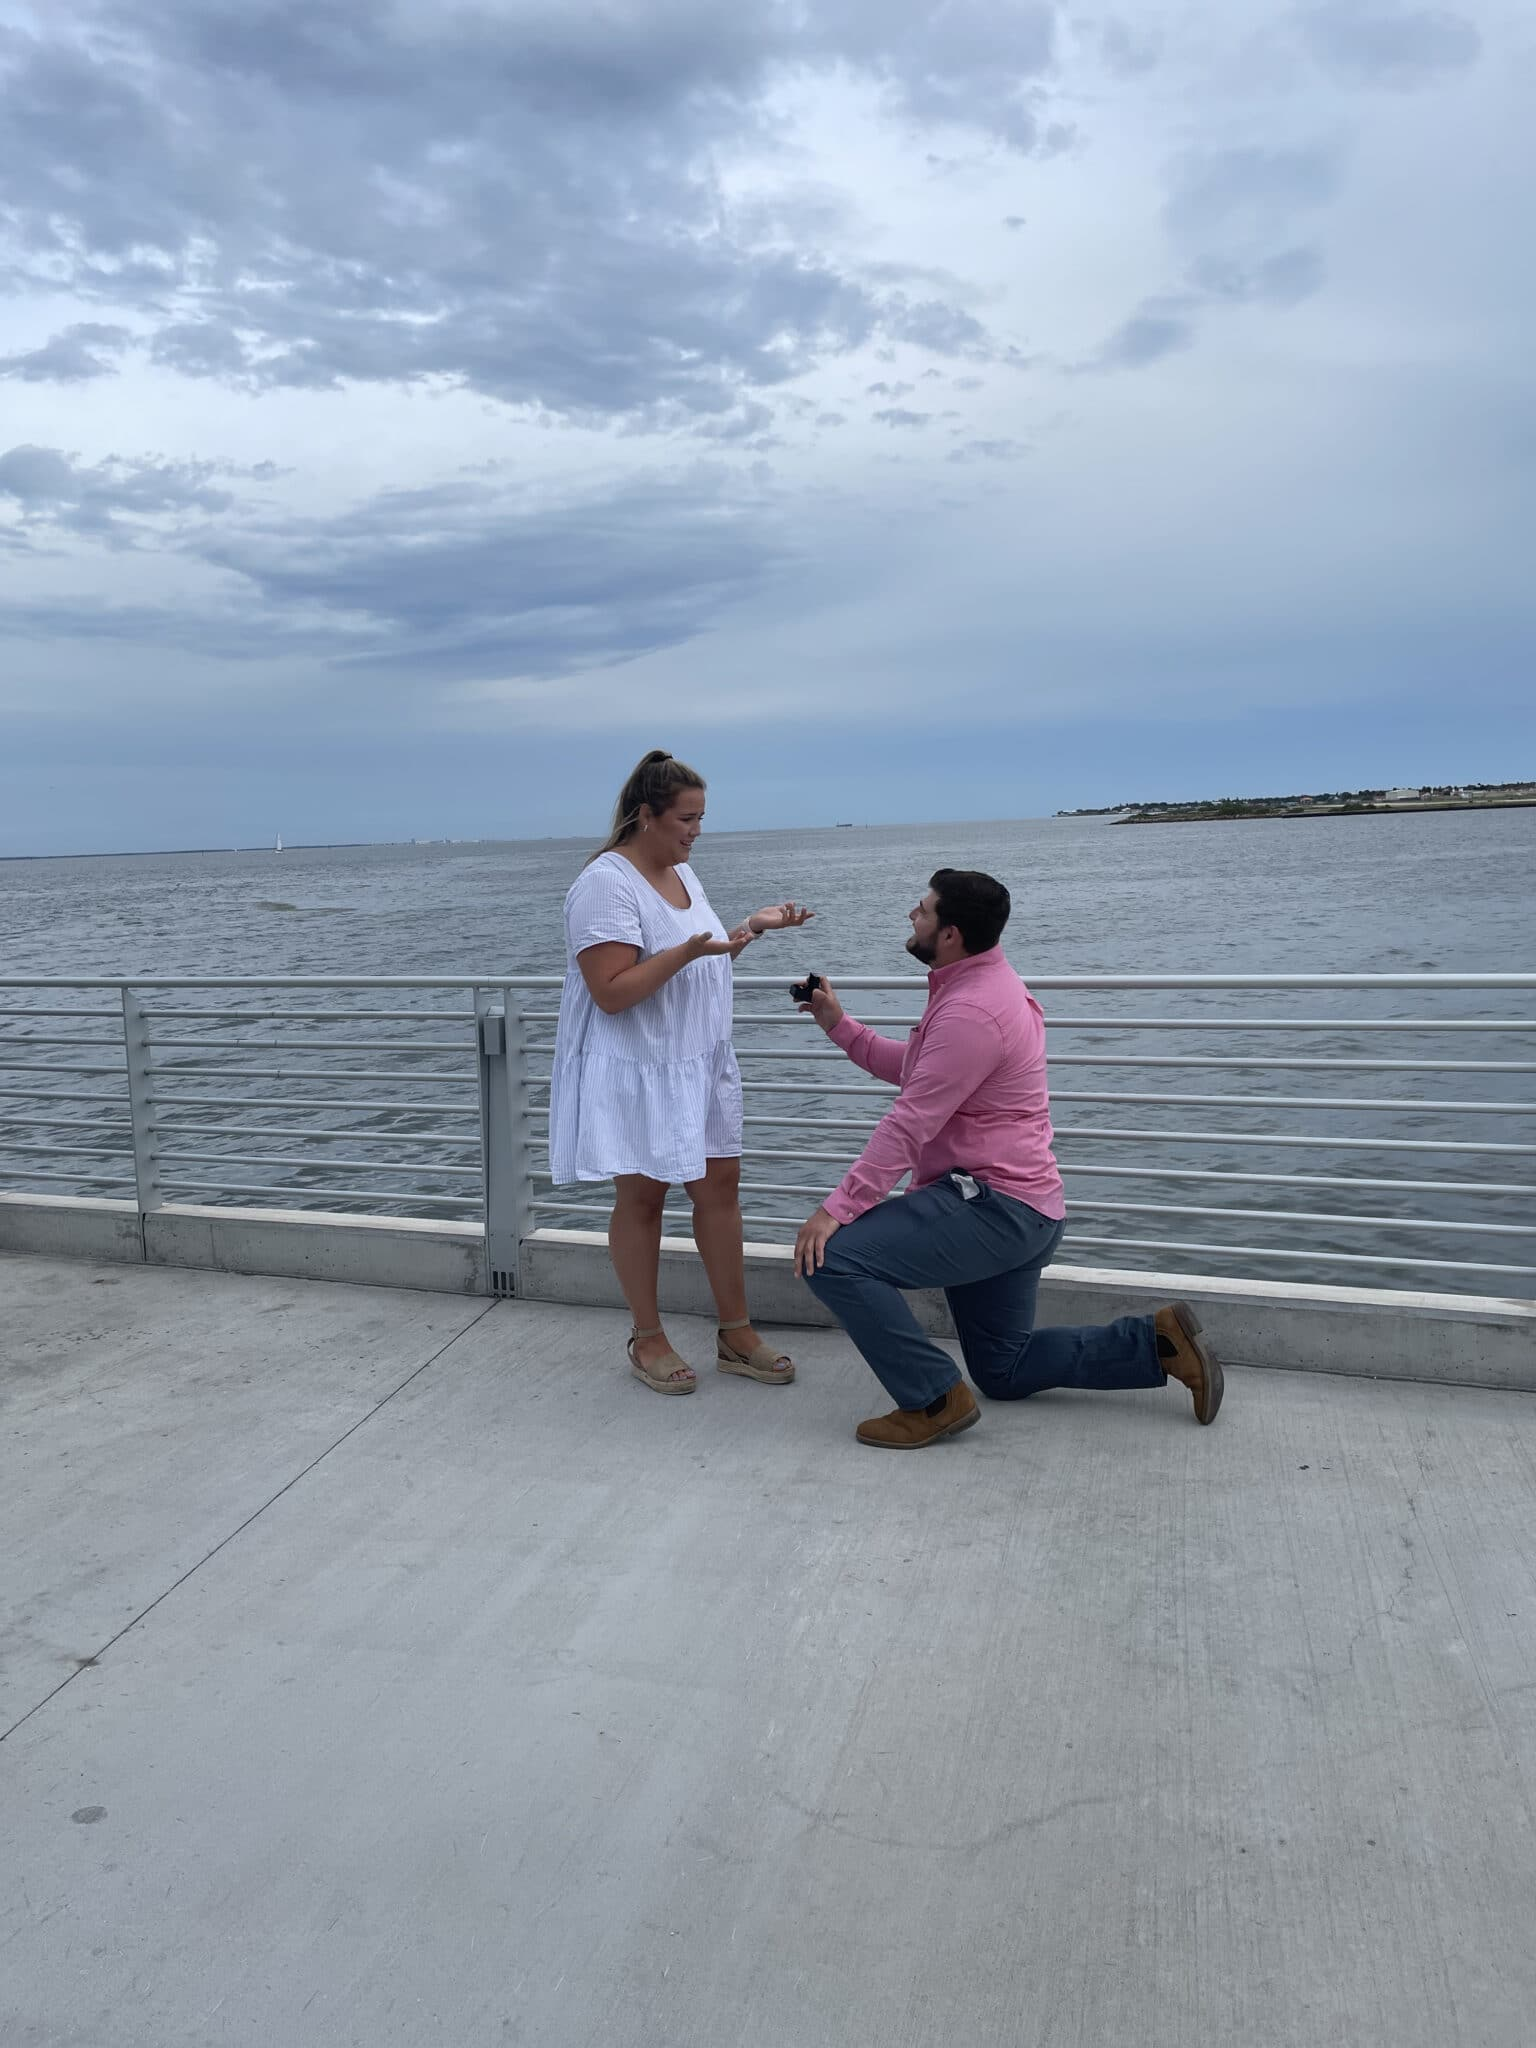 groom to be on one knee proposing to the bride to be at their st. pete pier marriage proposal